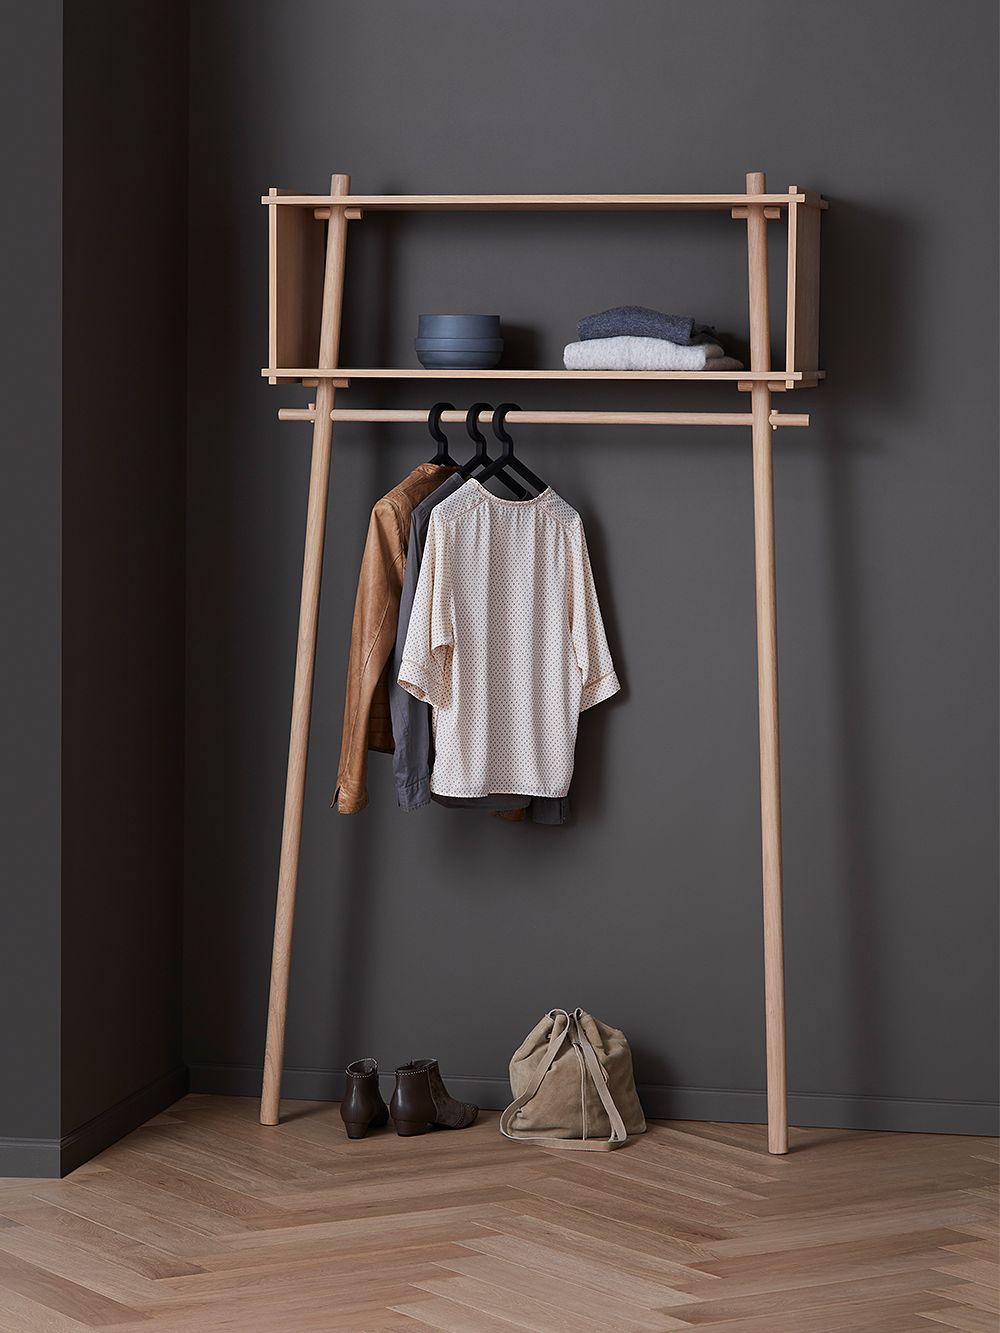 Woud's Illusion hangers on a coat rack.